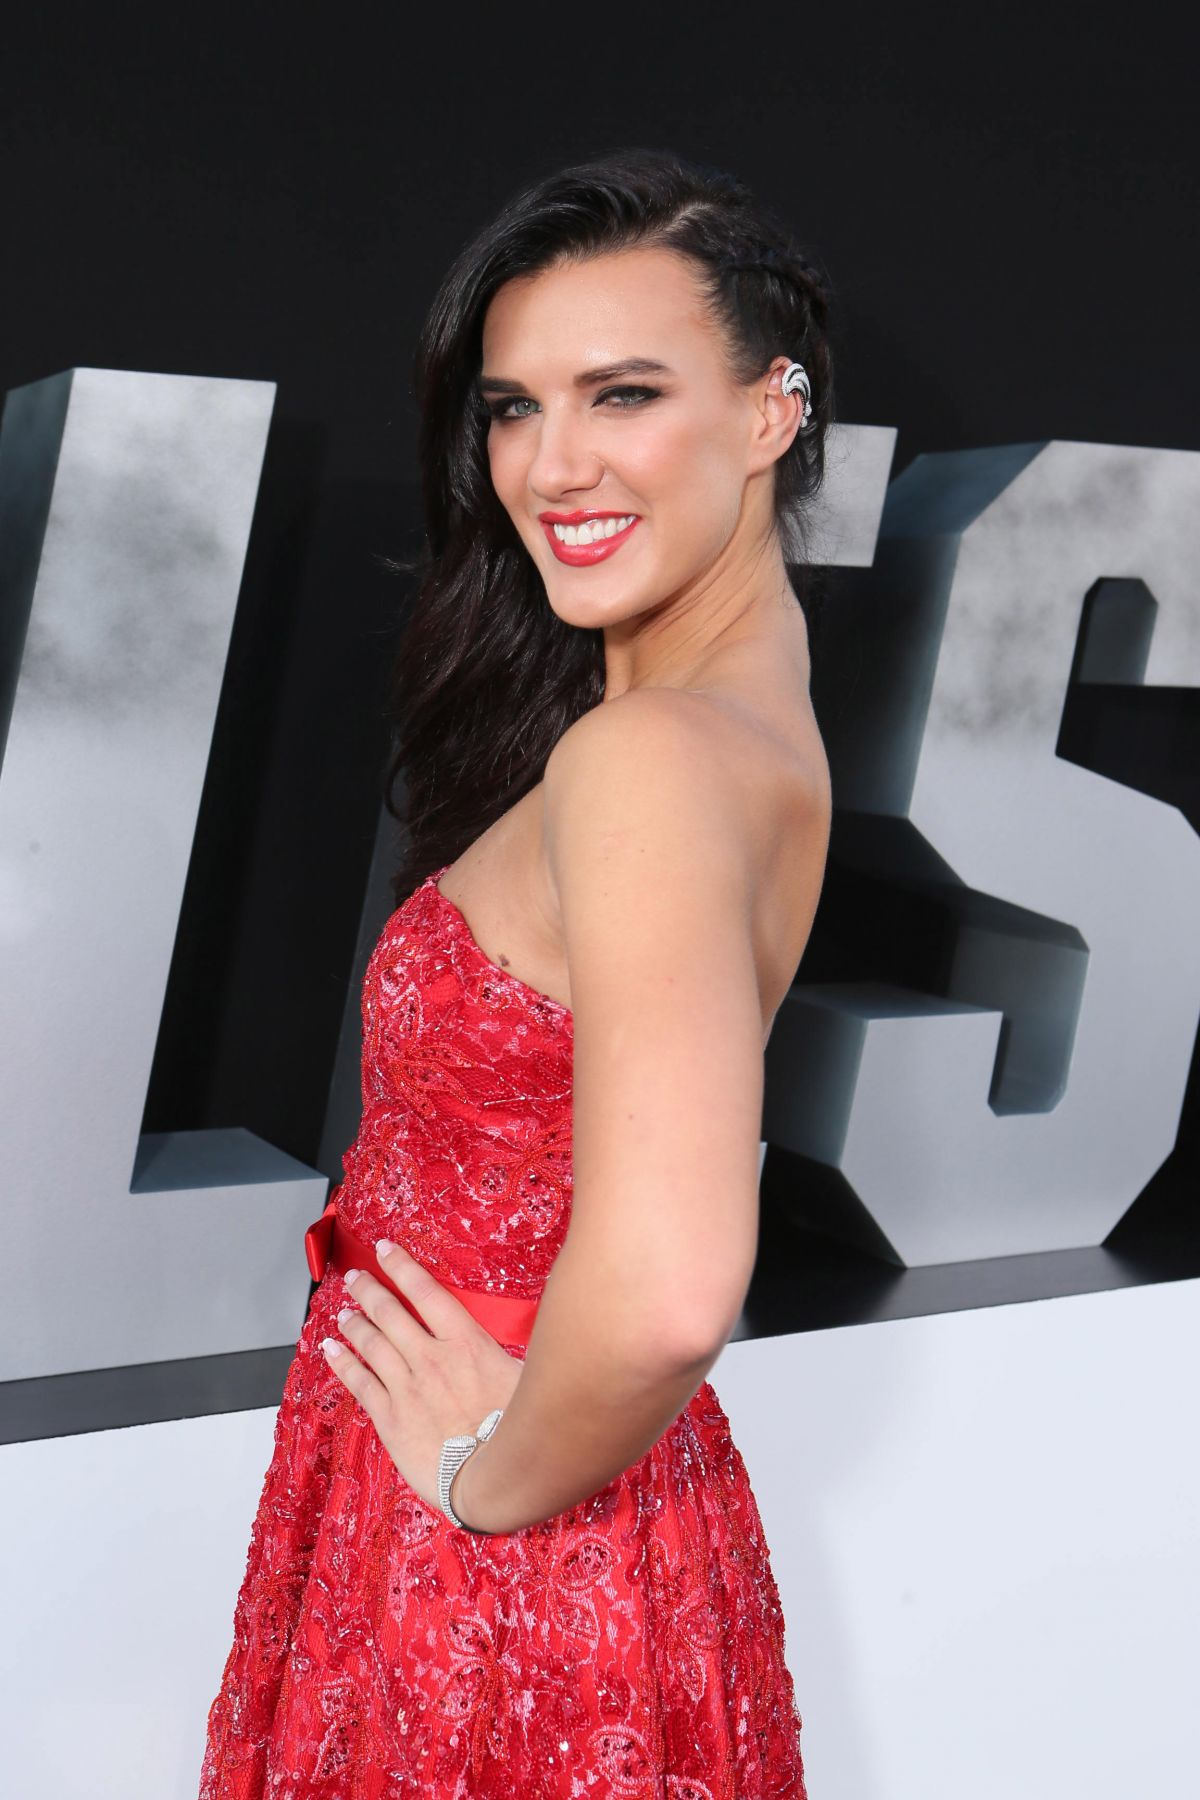 NATALIE BURN at The Expendables 3 Premier in Los Angeles